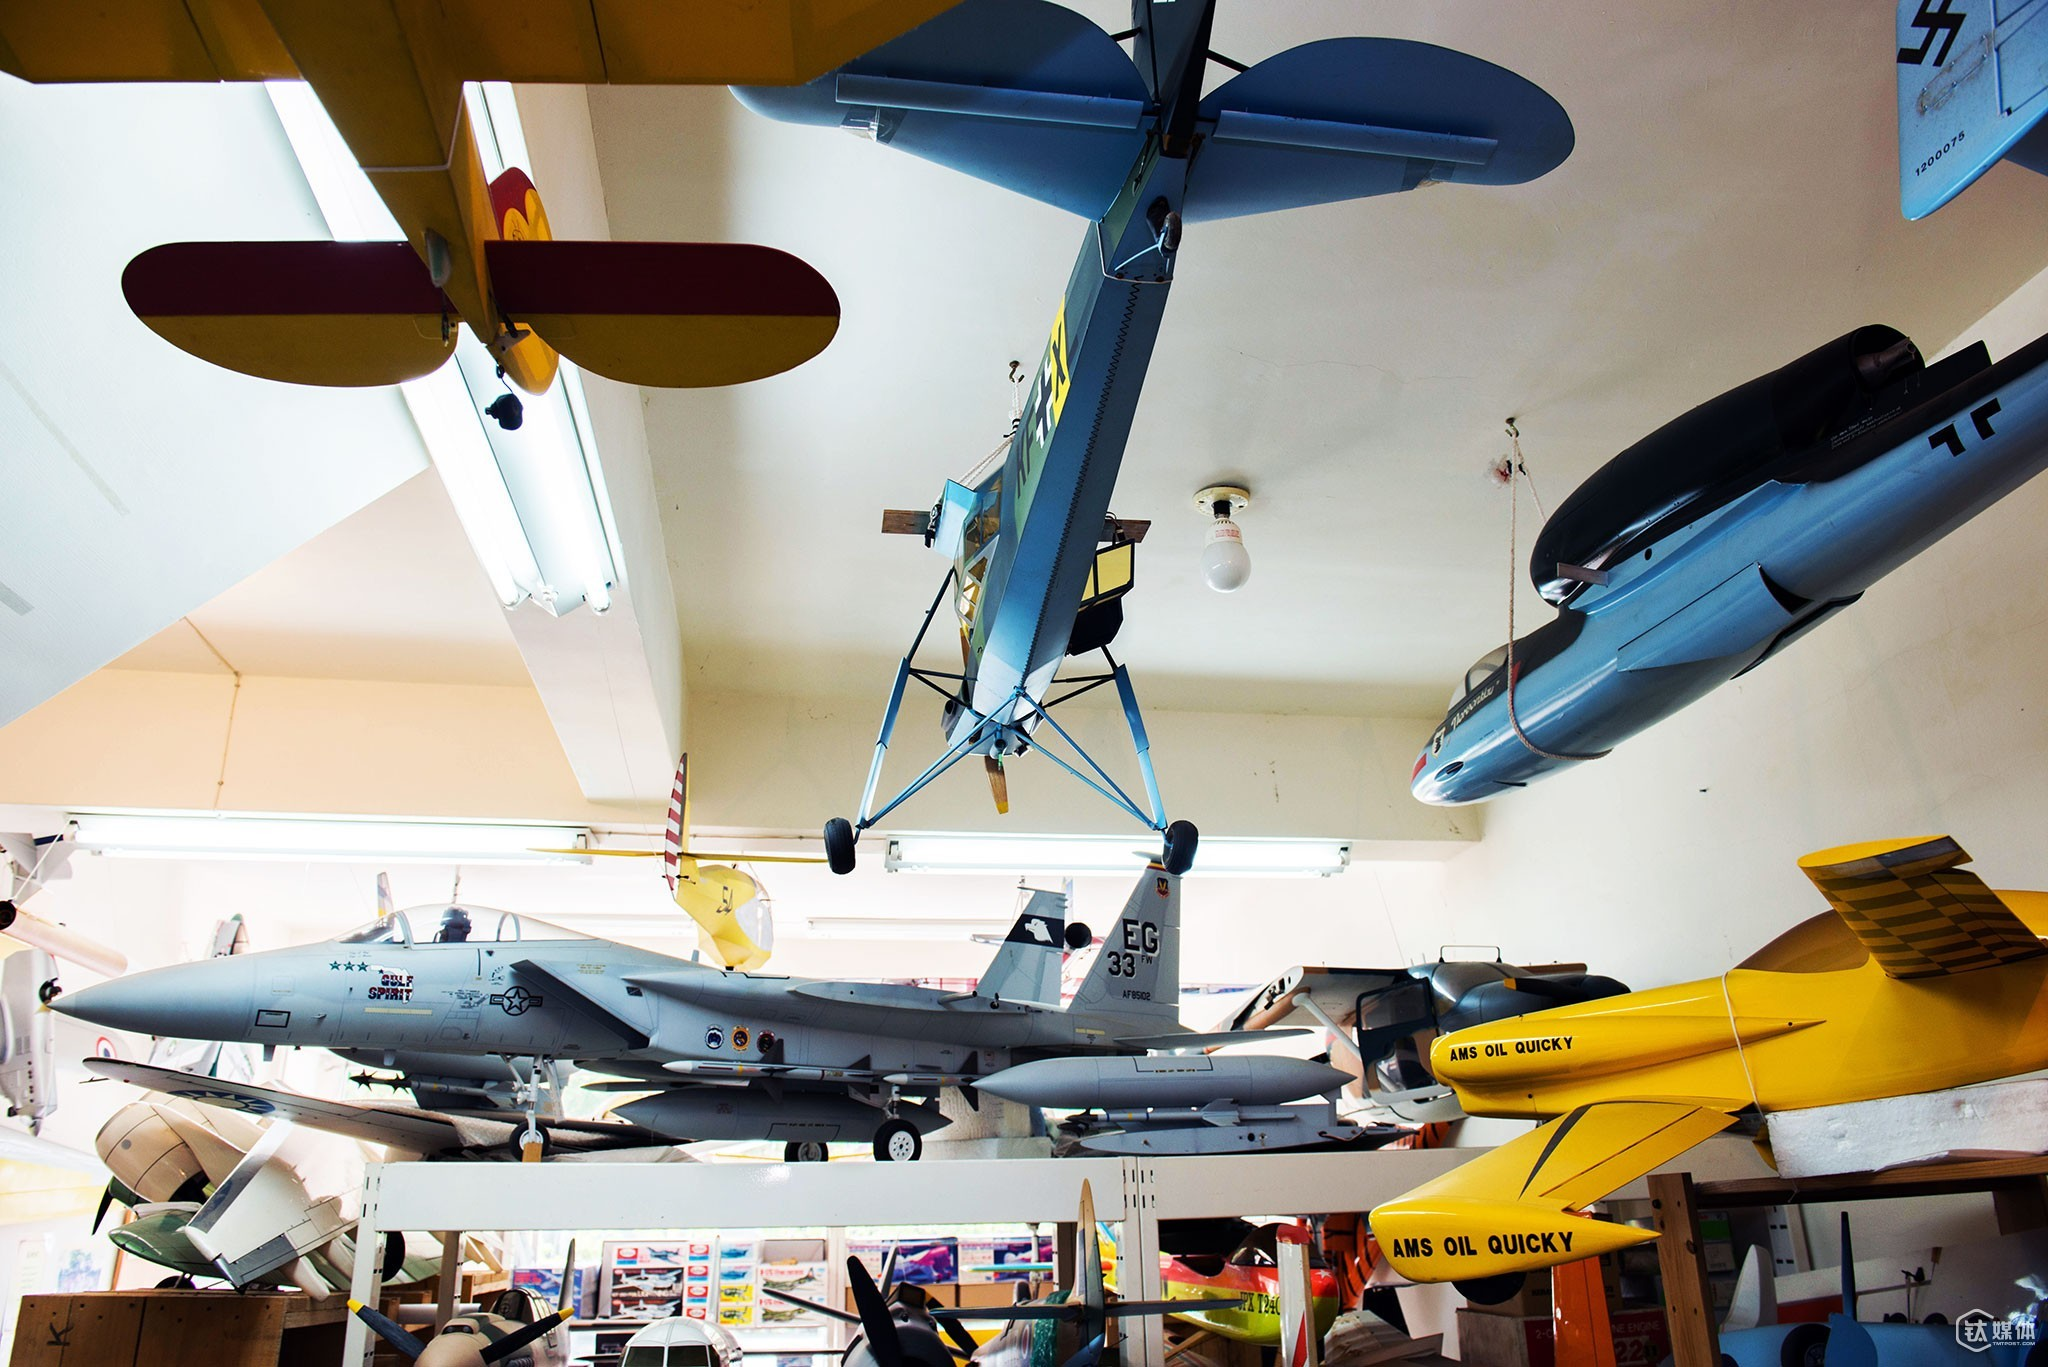 "There are many plane models in Zheng's store in Taiwan, which are made throughout 35 years of his career. On the shelf sat a 6:1 in proportion Mirage jet model. Mirage jets can reach a velocity of 200 km per hour. In his peak time, Zheng even opened a branch next to Taipei's landmark, Taipei 101. However, due to the mass production of airplane models by OEMs and economy's influence, Zheng had to close down his stores and even nearly went broke. During that difficult time, Zheng took all his handmade models back to Taoyuan. ""It could take my dad one month to six months to finish making a model,"" Zheng's daughter Zheng Ailing said. ""He didn't really care about the cost and he's never like a real businessman. Sometimes if the customers really like the models and didn"